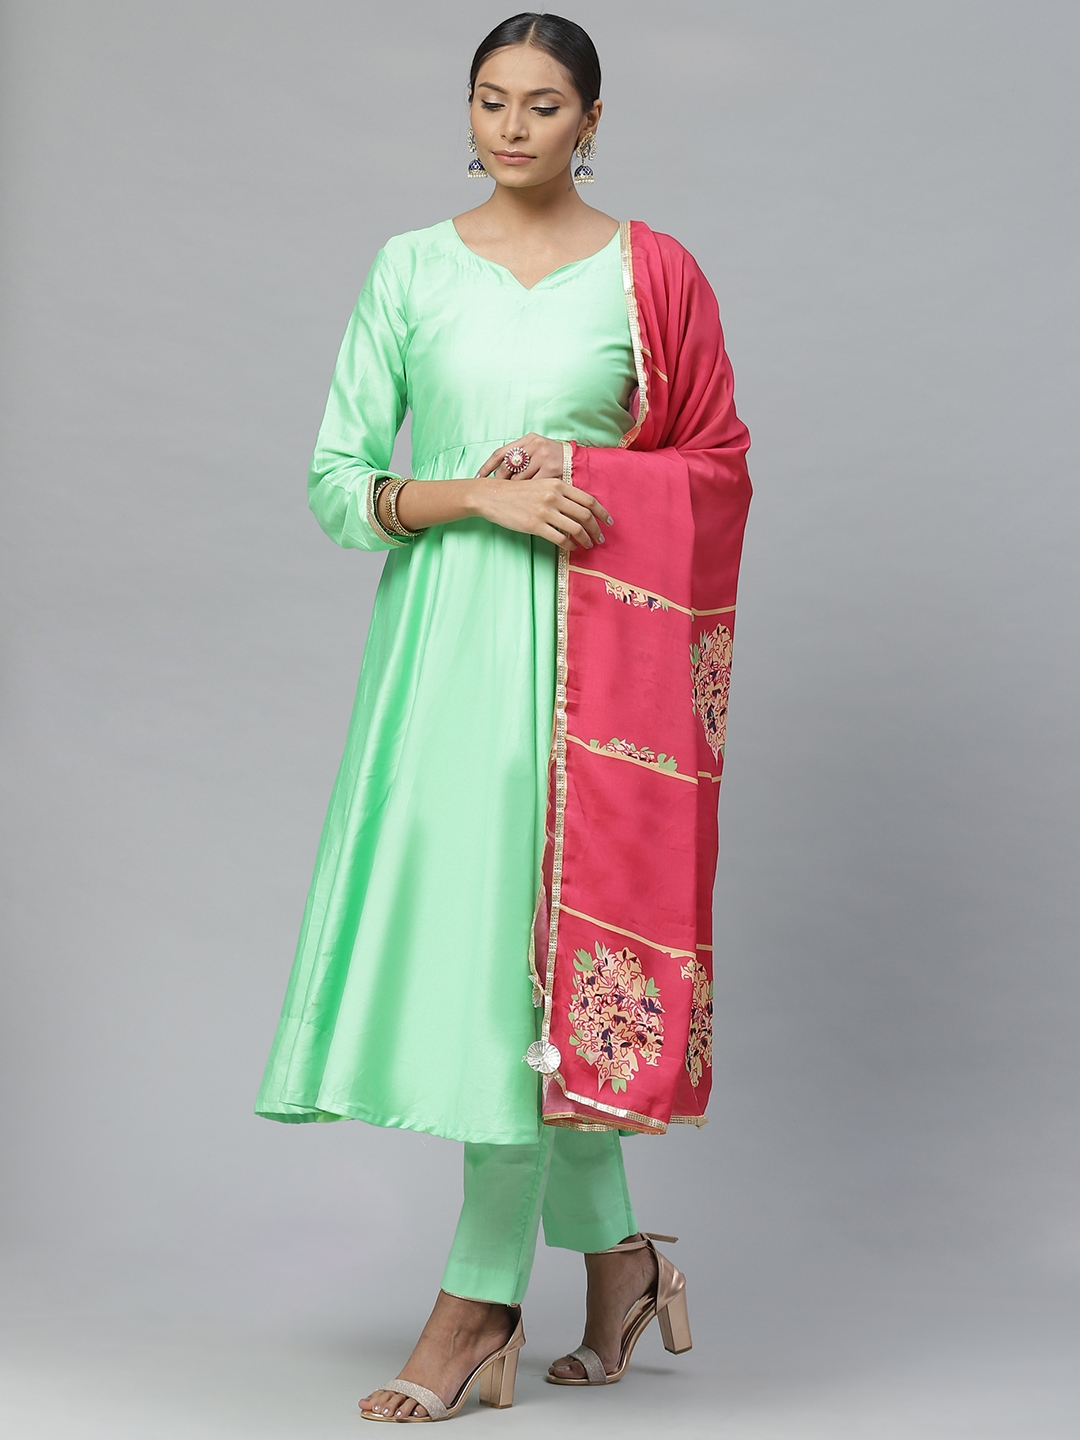 Readiprint Fashions Green   Pink Solid Semi Stitched Dress Material With Dupatta